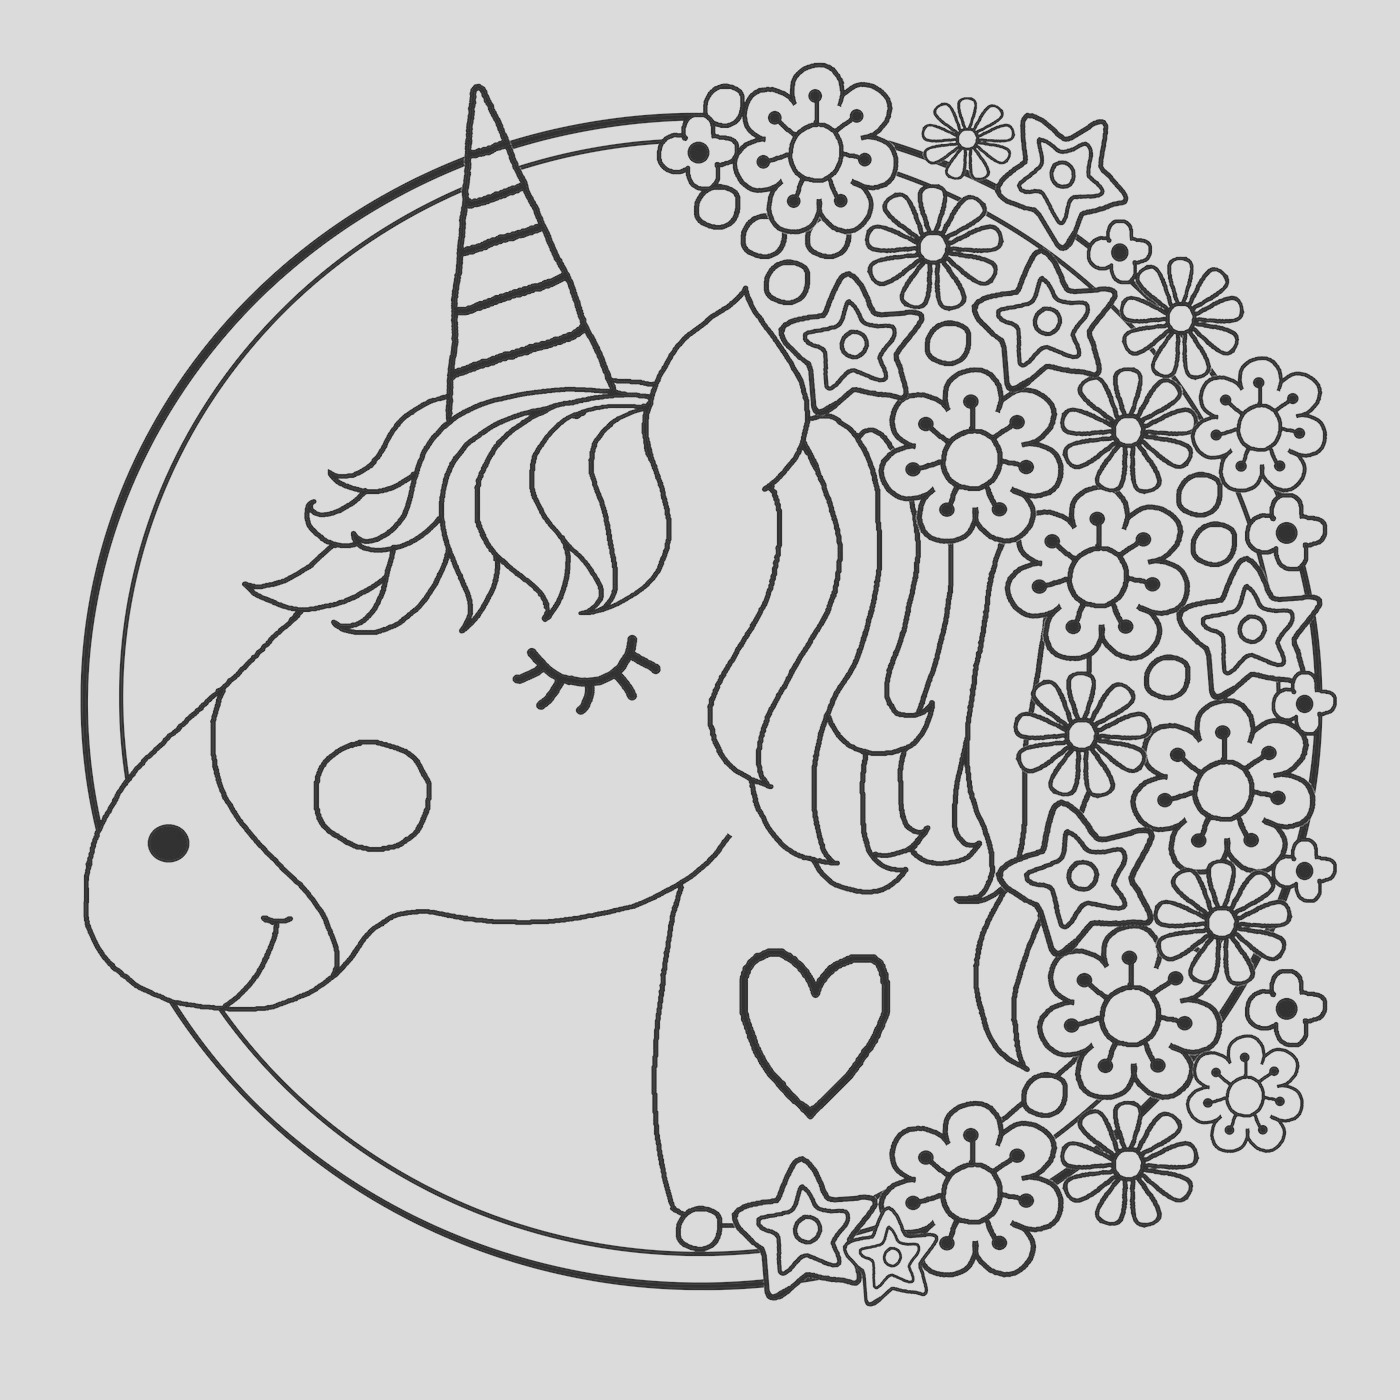 unicorn colouring book pages 5